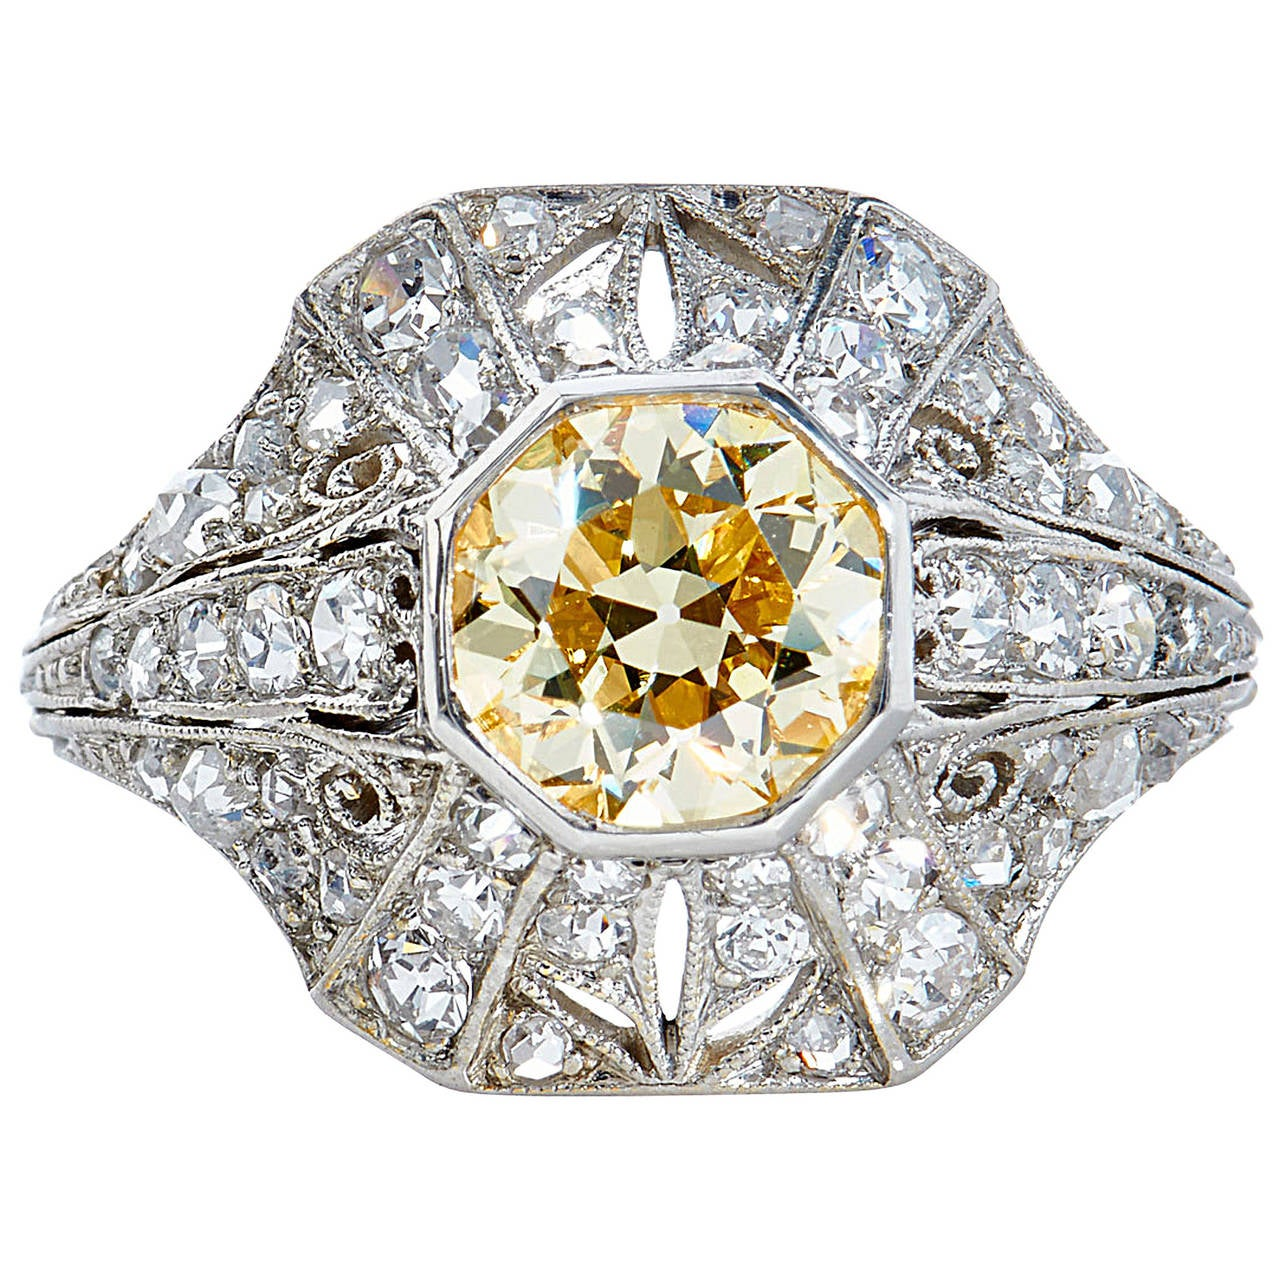 1.25 Carat Natural Fancy Yellow Old European Cut Diamond Platinum Ring For Sale